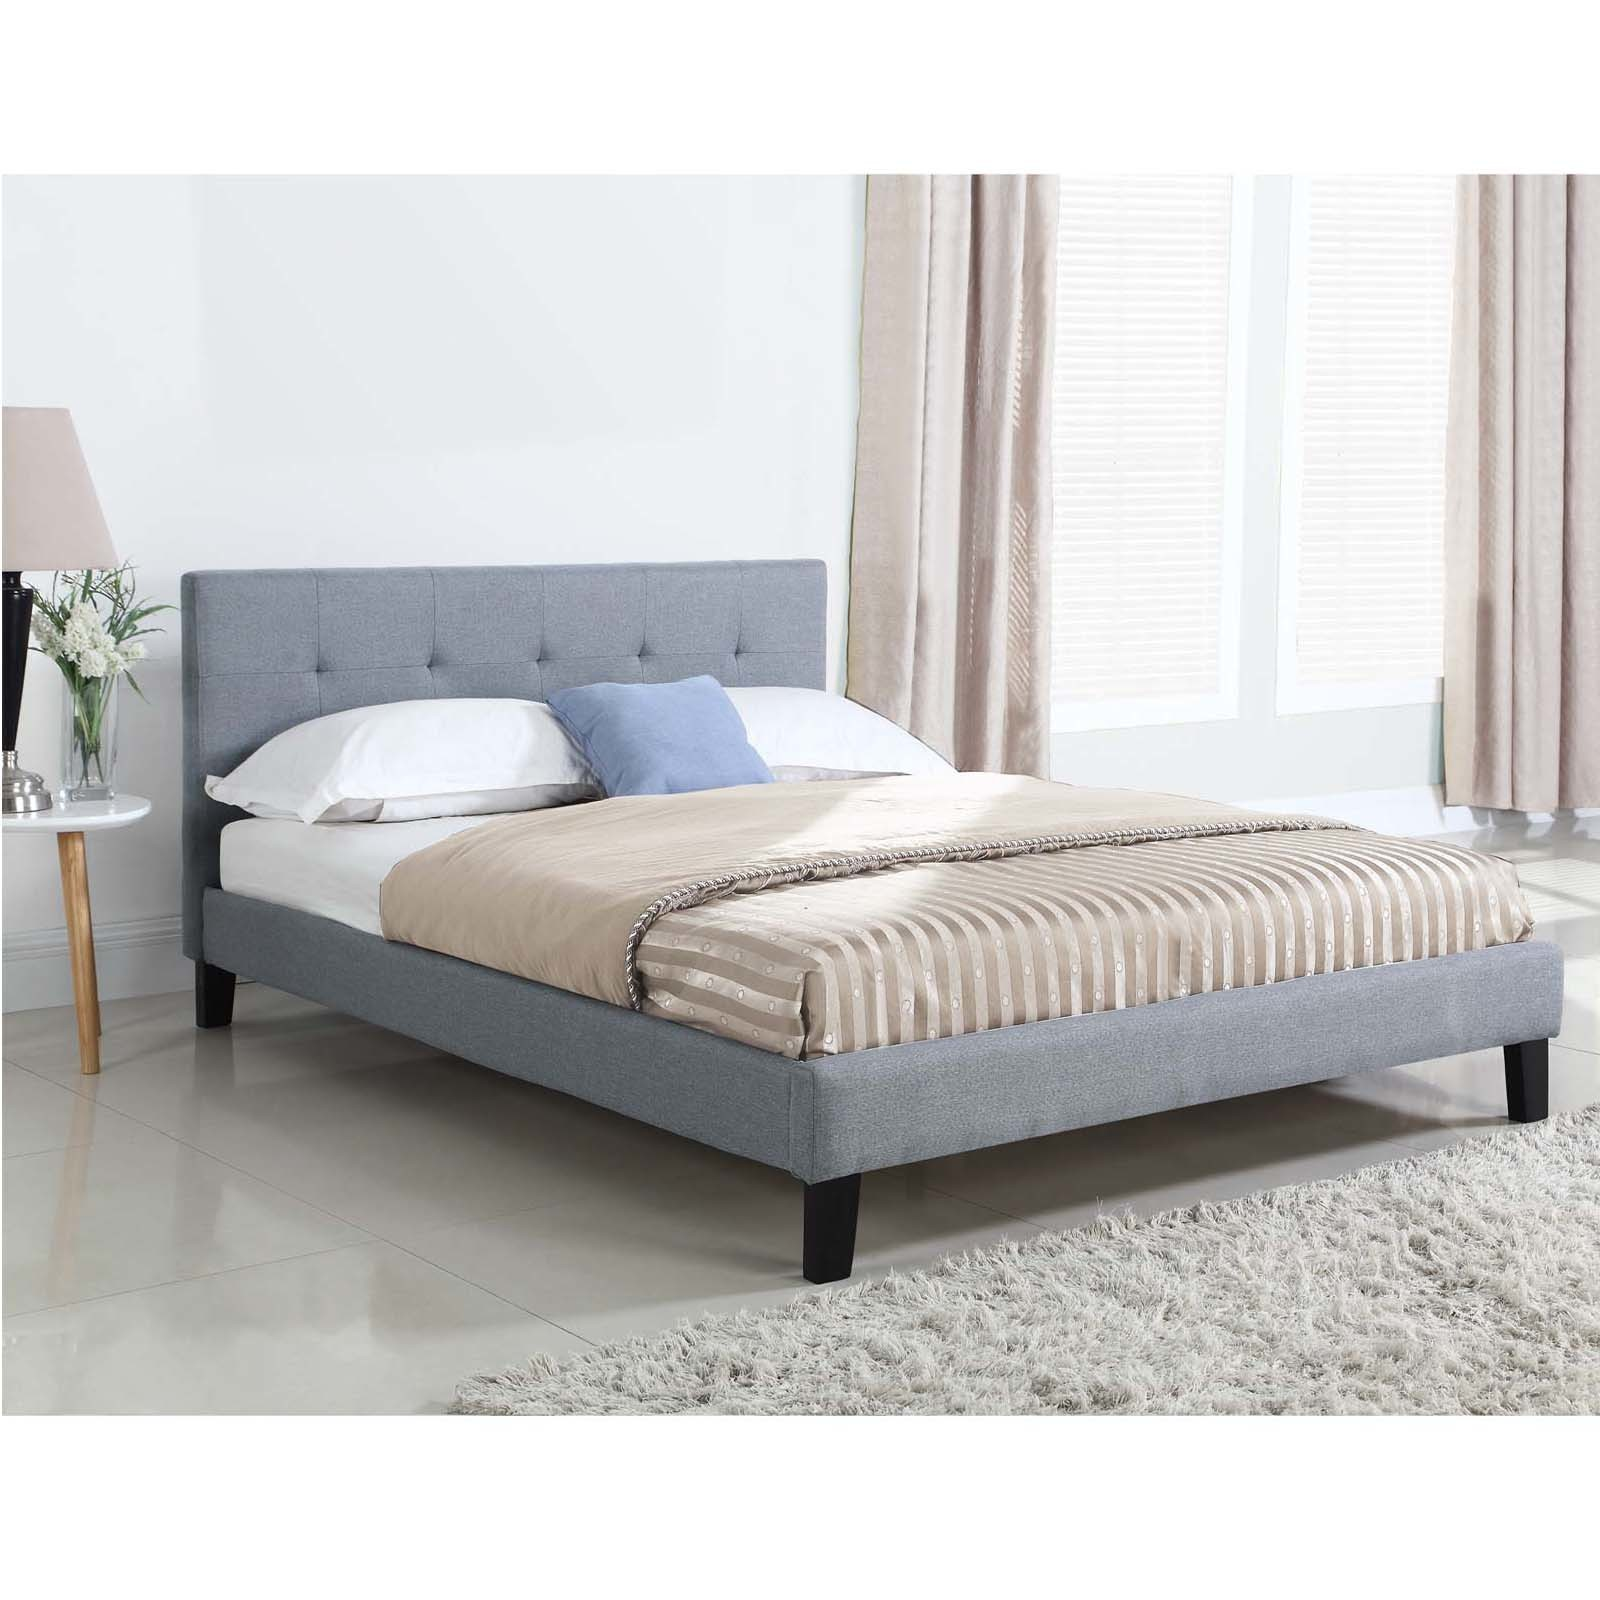 New Grey Button Tufted Queen Bed Frame Ebay